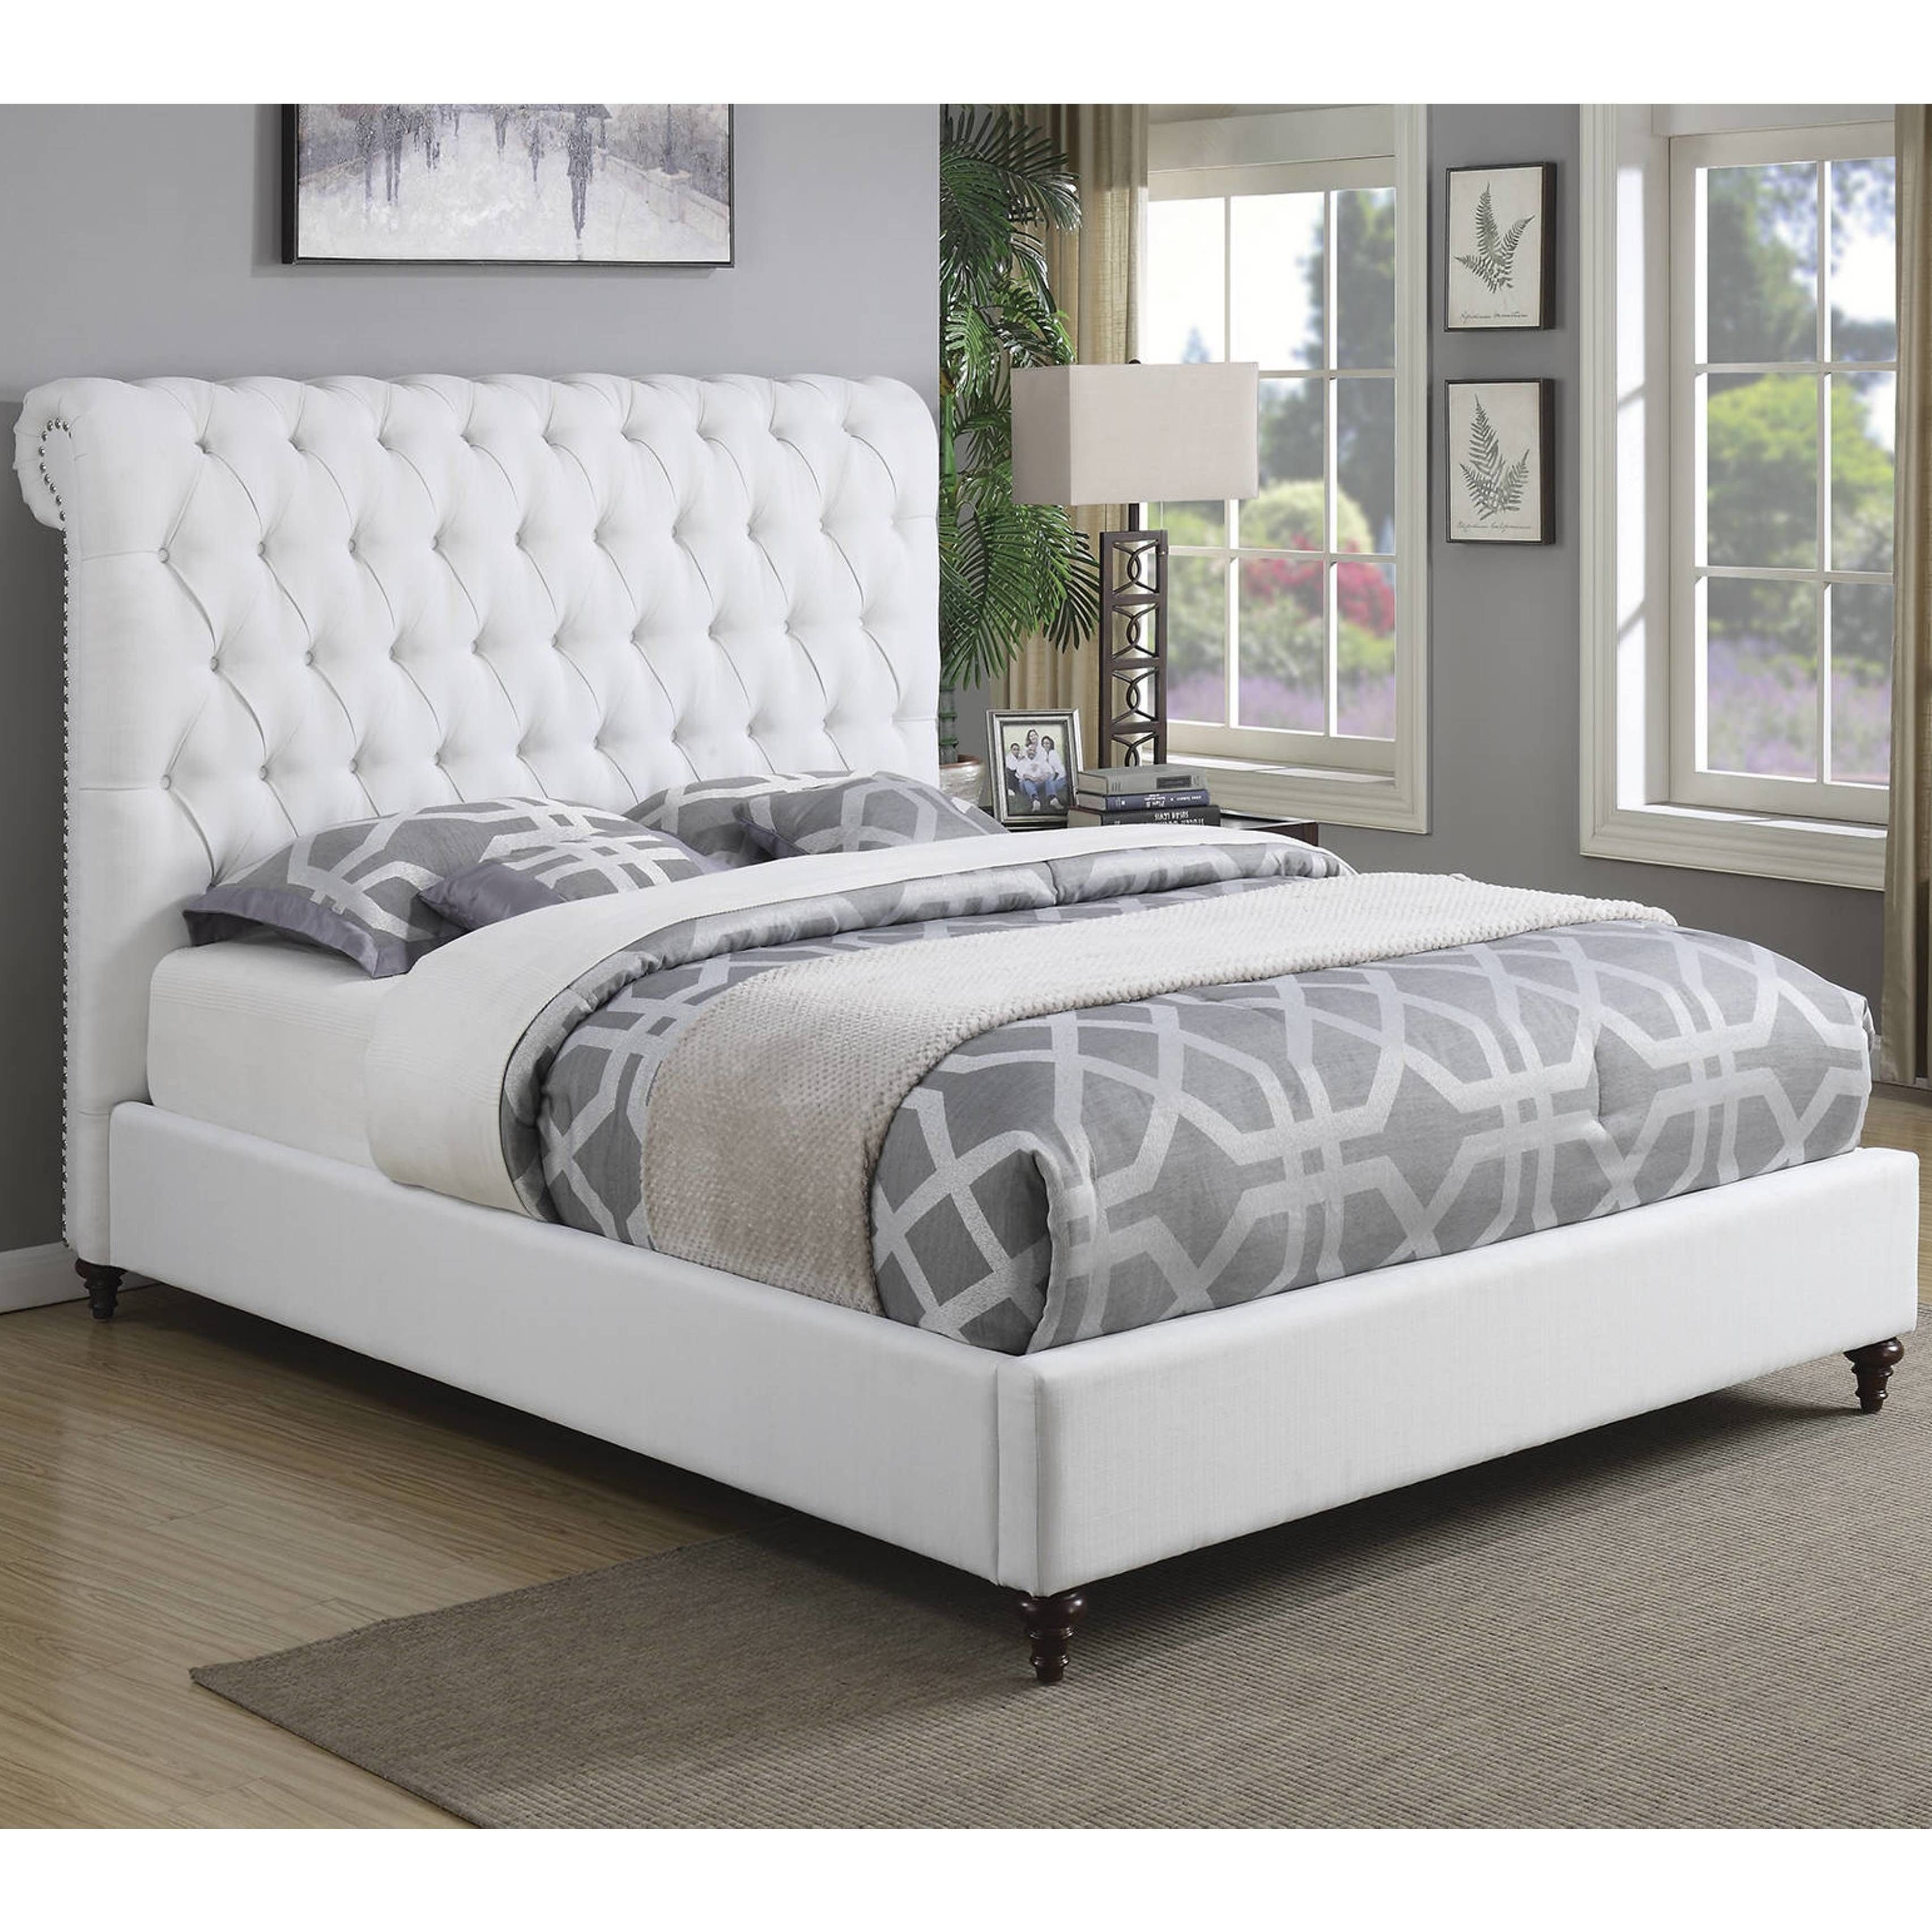 466ce8b19d3 Modern Design Upholstered Bed with Diamond Button Tufted Headboard and  Nailhead Trim (Eastern King Size Bed)